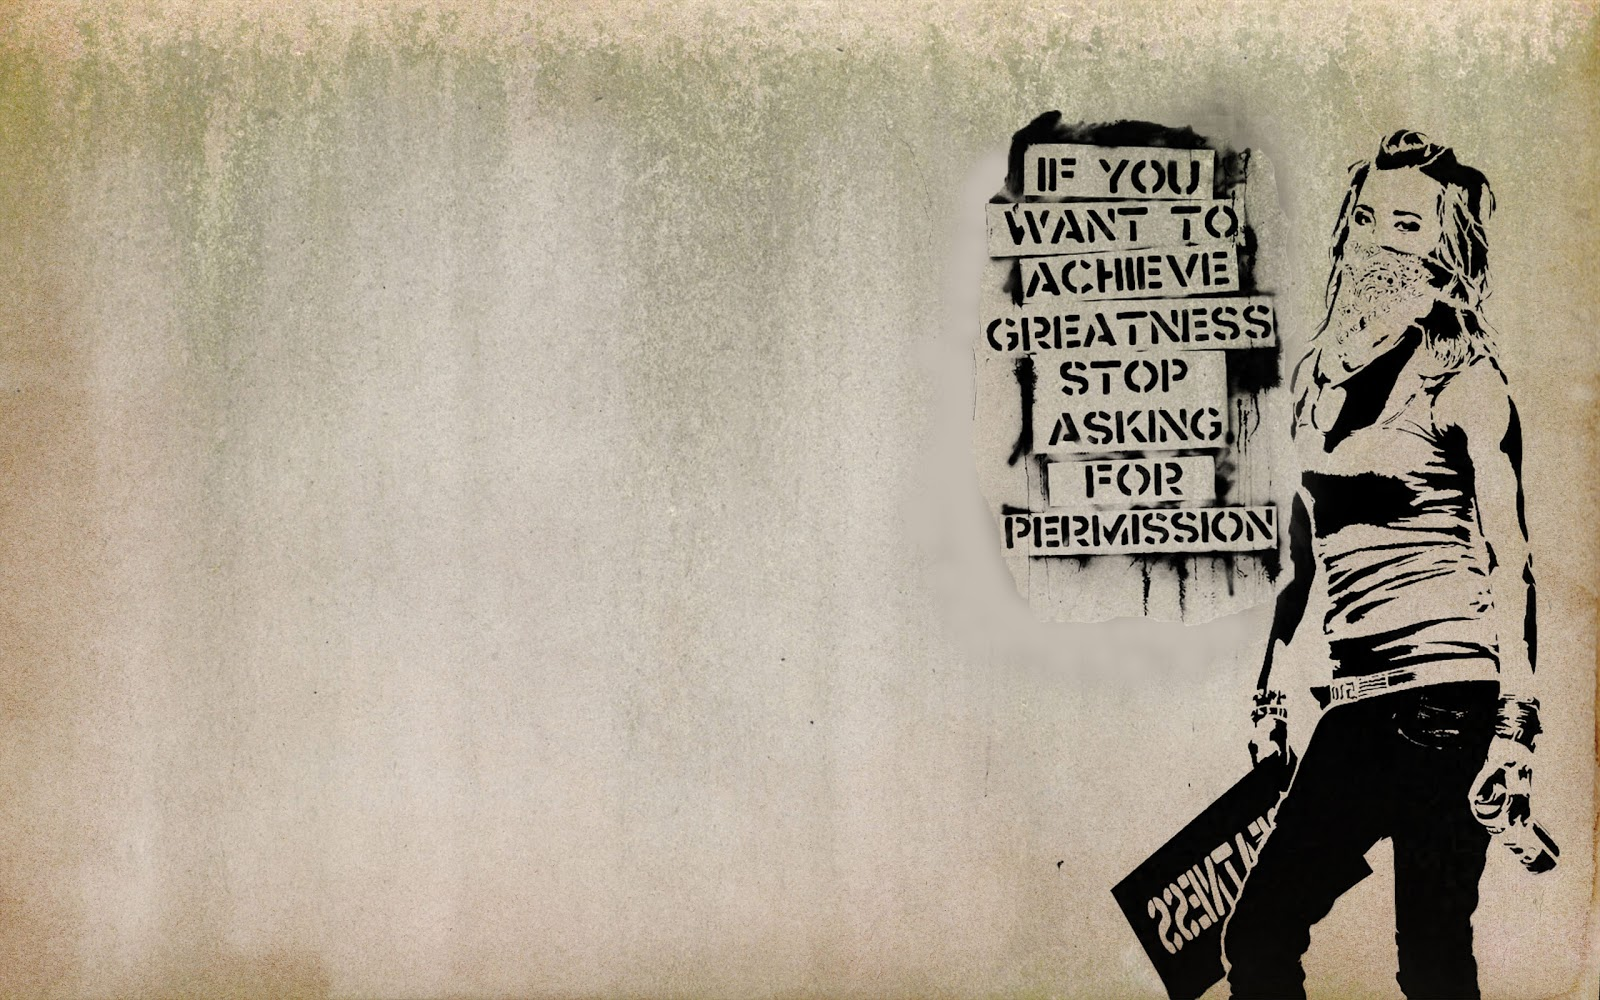 Famous graffiti art quotes - Quotes About Graffiti